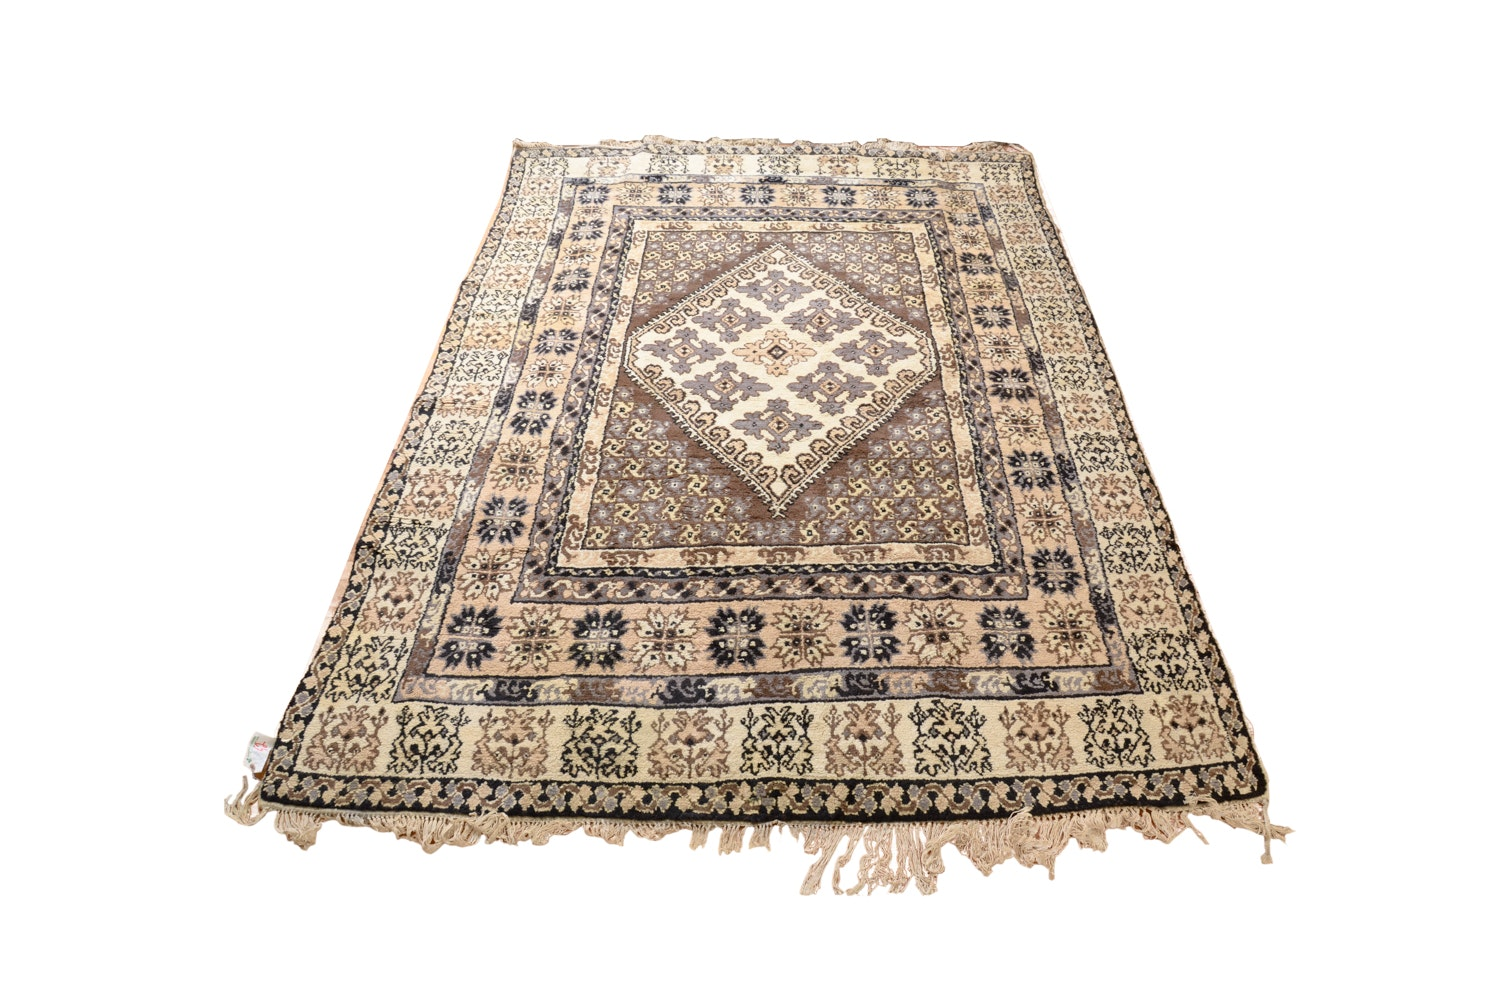 1950s Hand-Knotted Tunisian Wool Rug